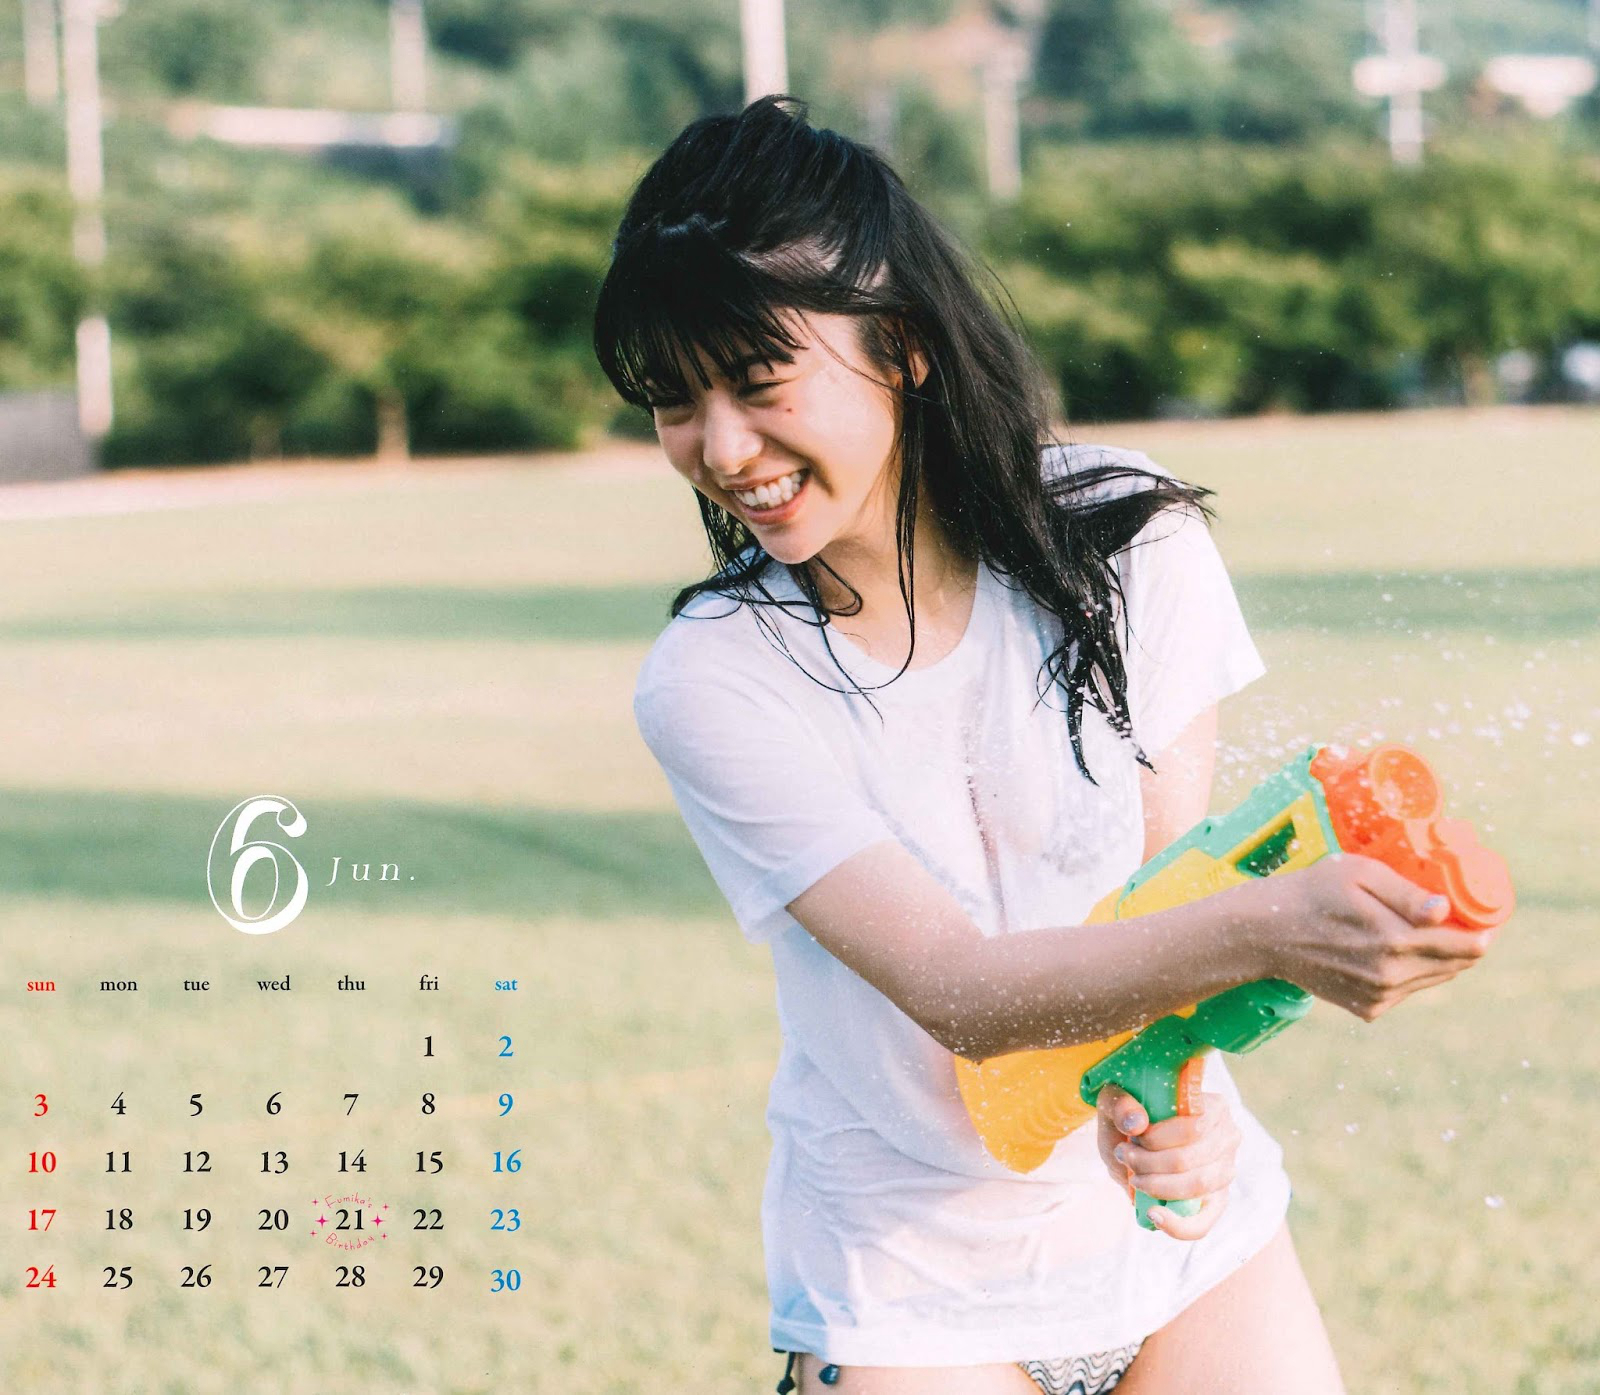 Fumika-CalendarBook-014.jpg